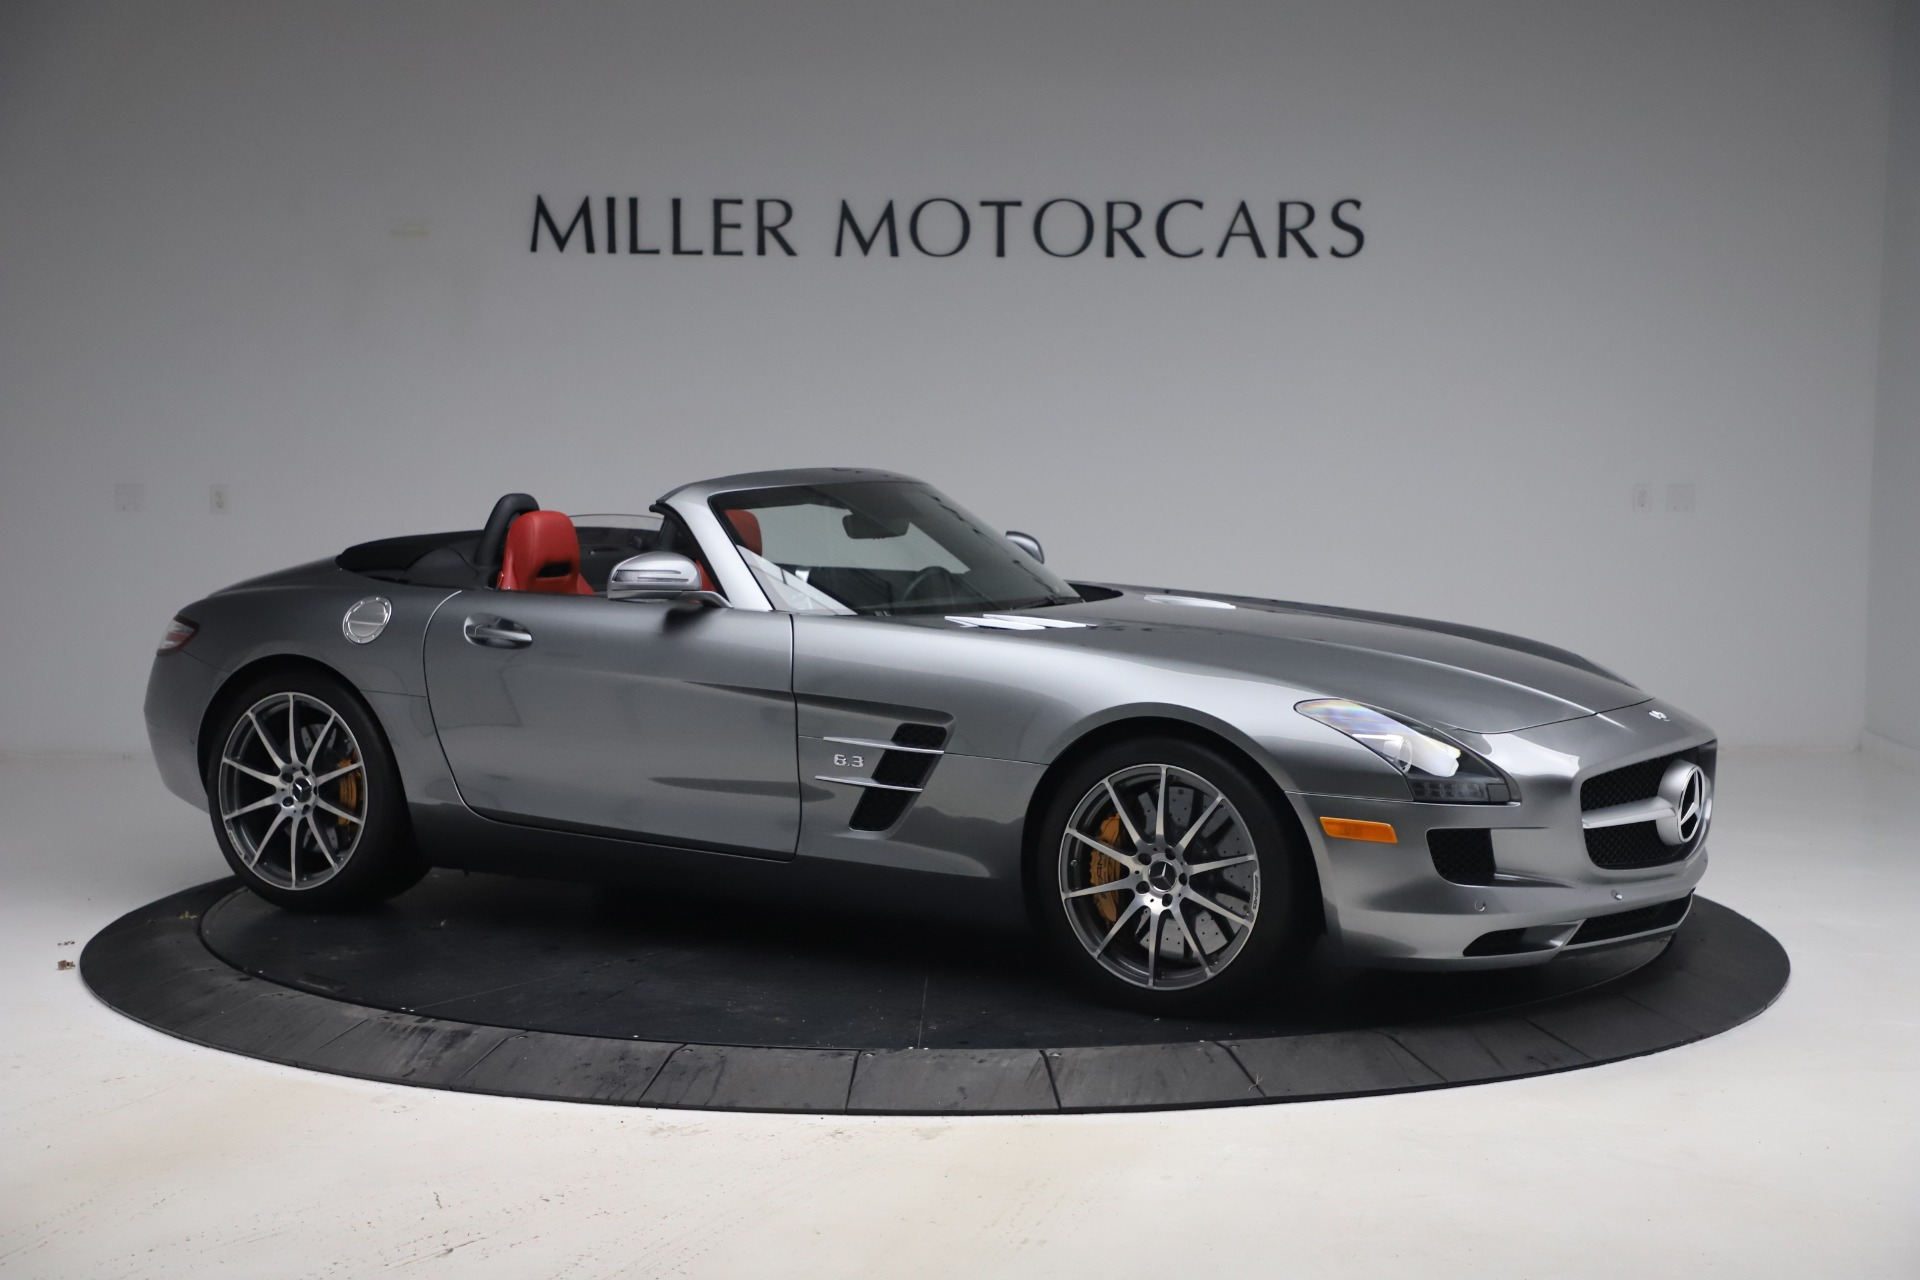 Used 2012 Mercedes-Benz SLS AMG  For Sale In Westport, CT 3189_p15